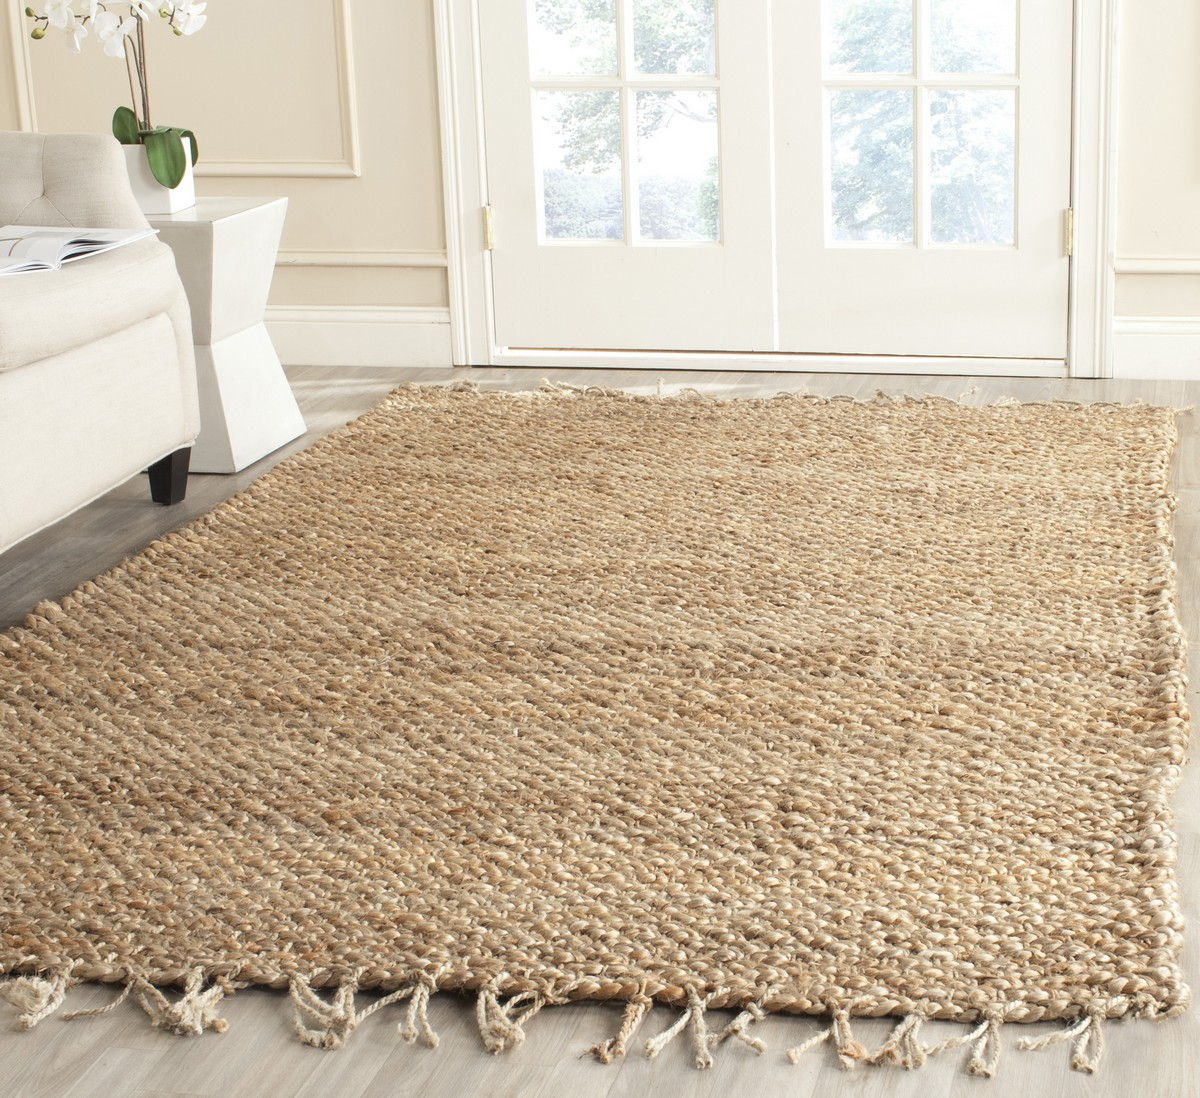 Rug Nf733a Natural Fiber Area Rugs By Safavieh